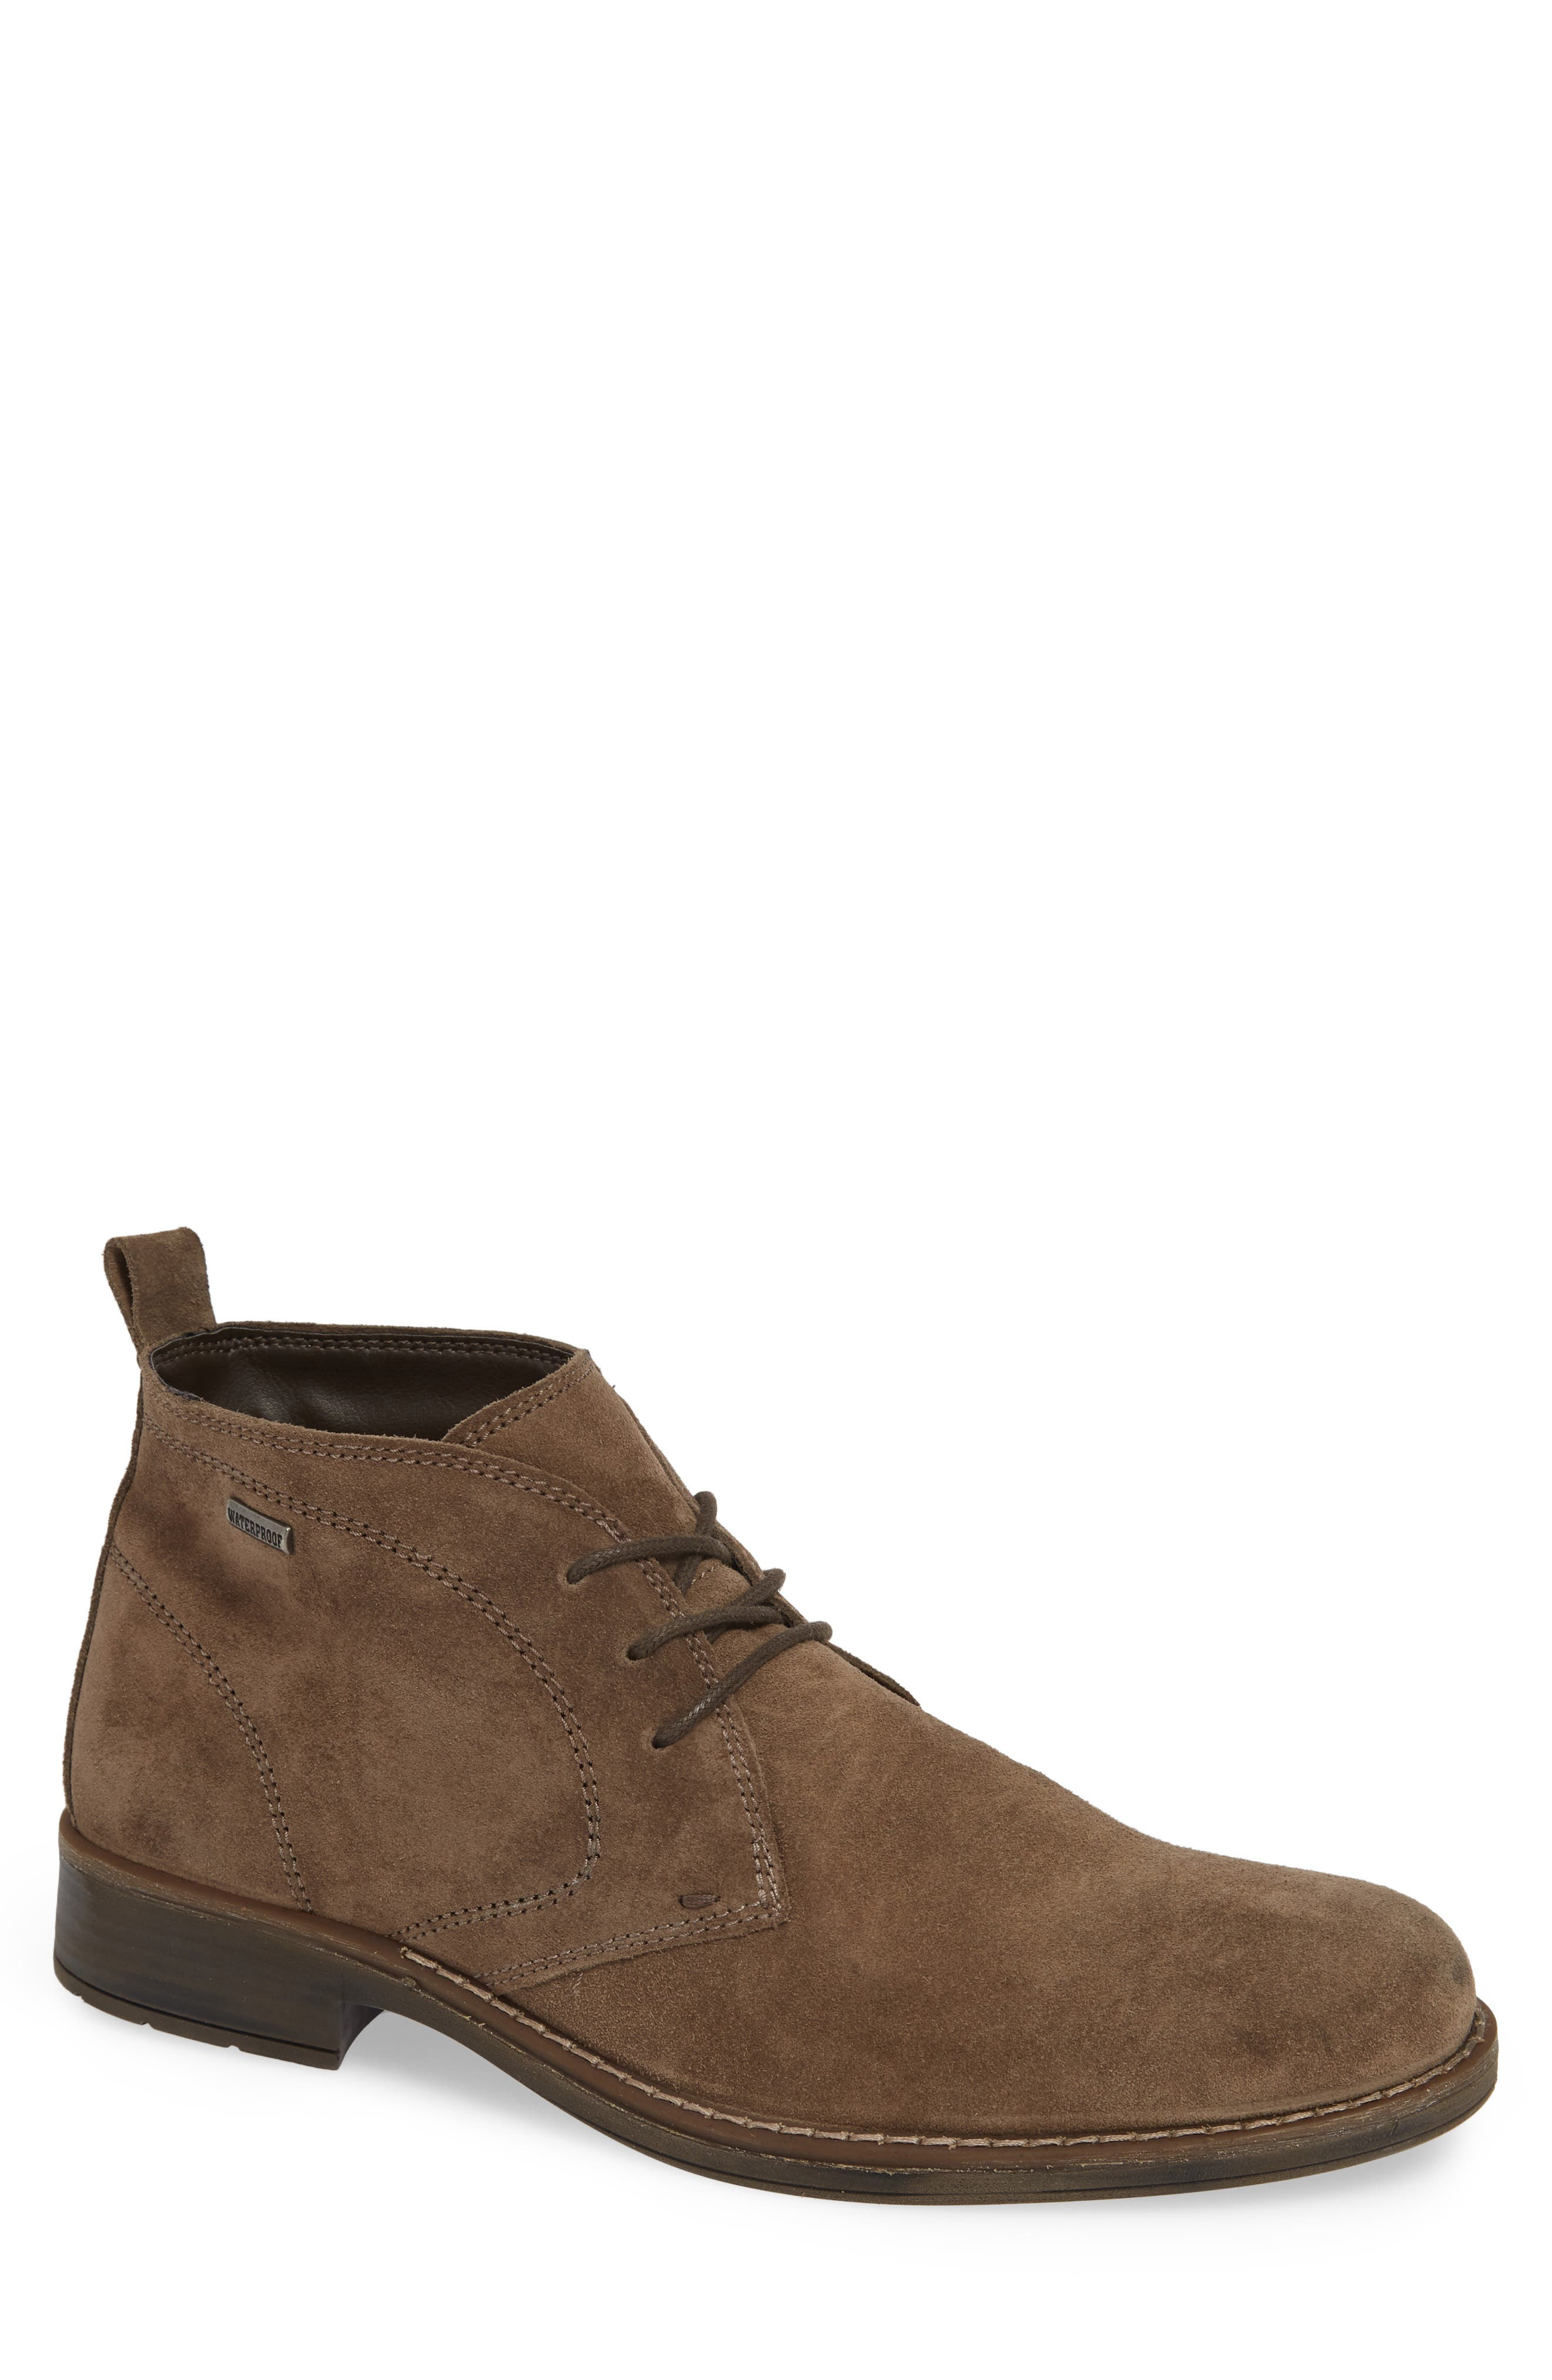 Stevens Waterproof Chukka Boot,                         Main,                         color, 250